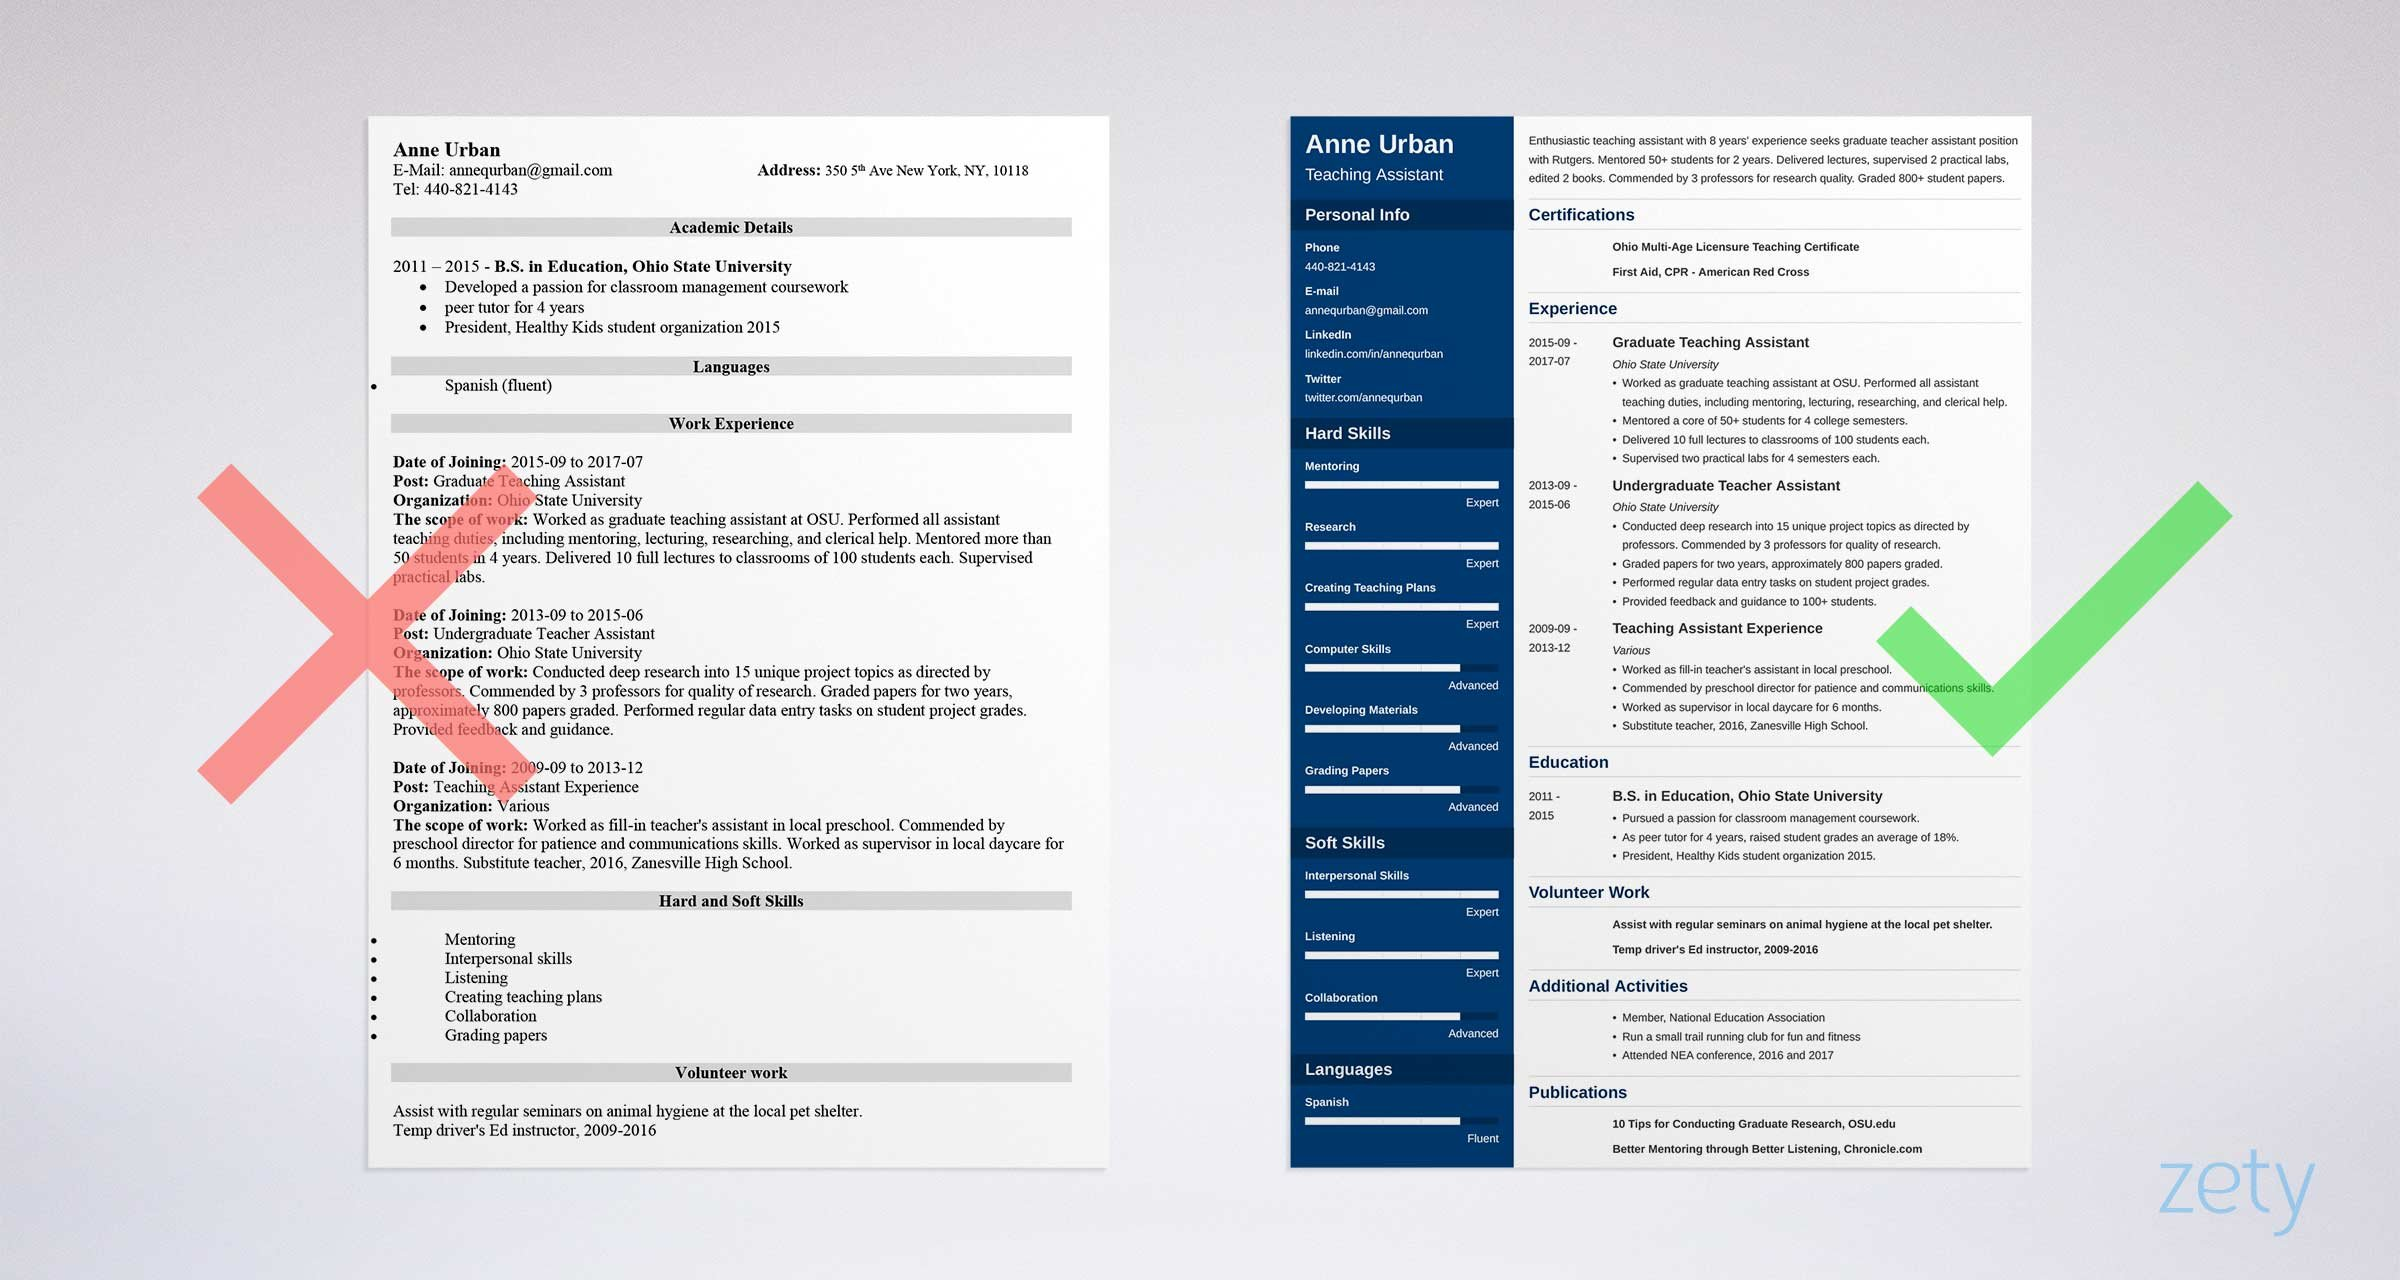 Best Font for a Resume: What Size & Typeface to Use? [15+